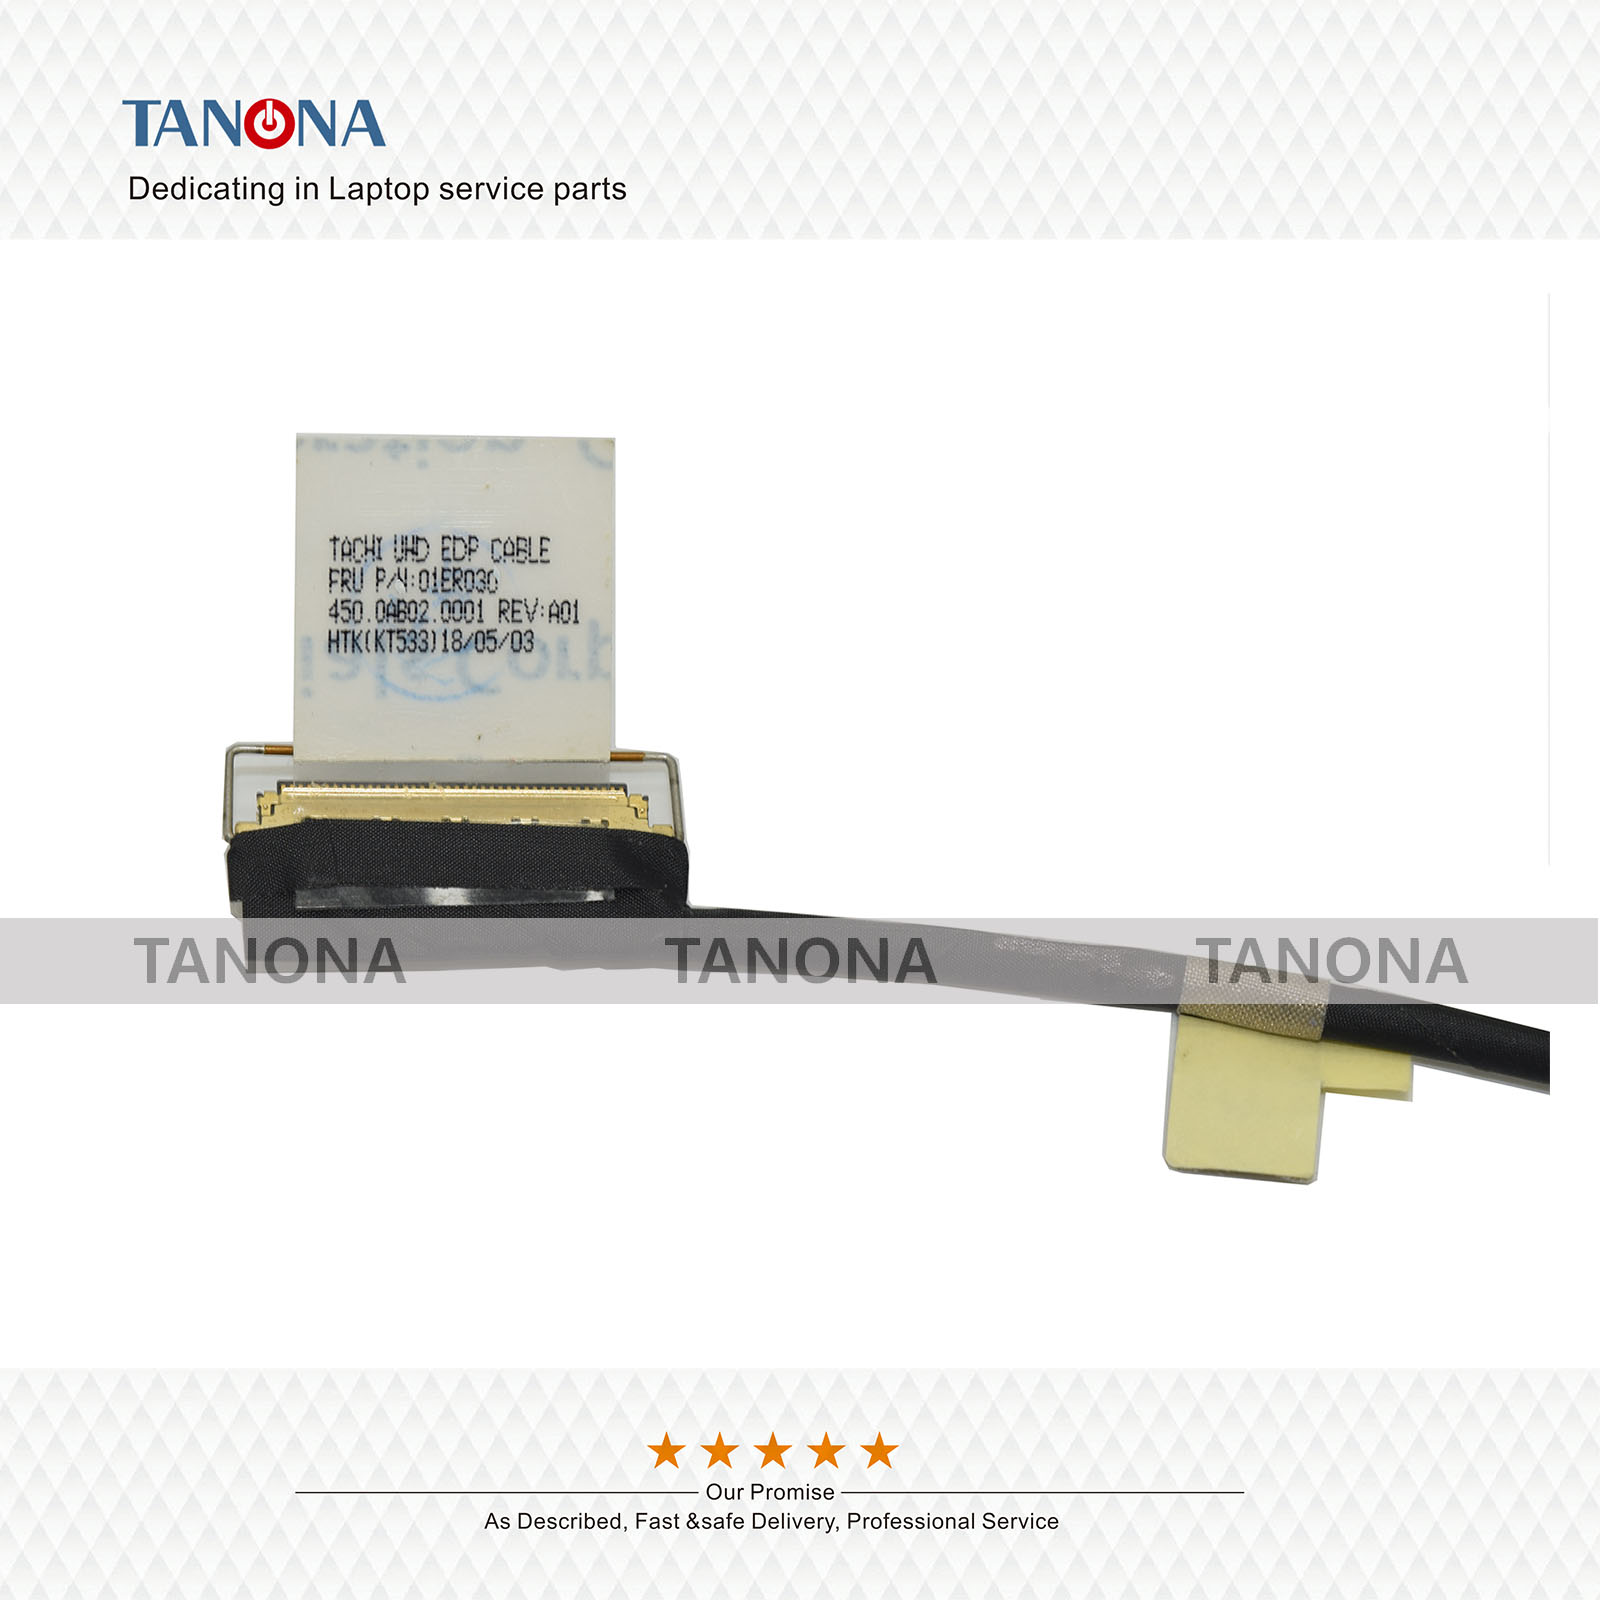 New 01ER030 for Lenovo Thinkpad T570 P51S T580 P52S LCD UHD EDP Video Cable